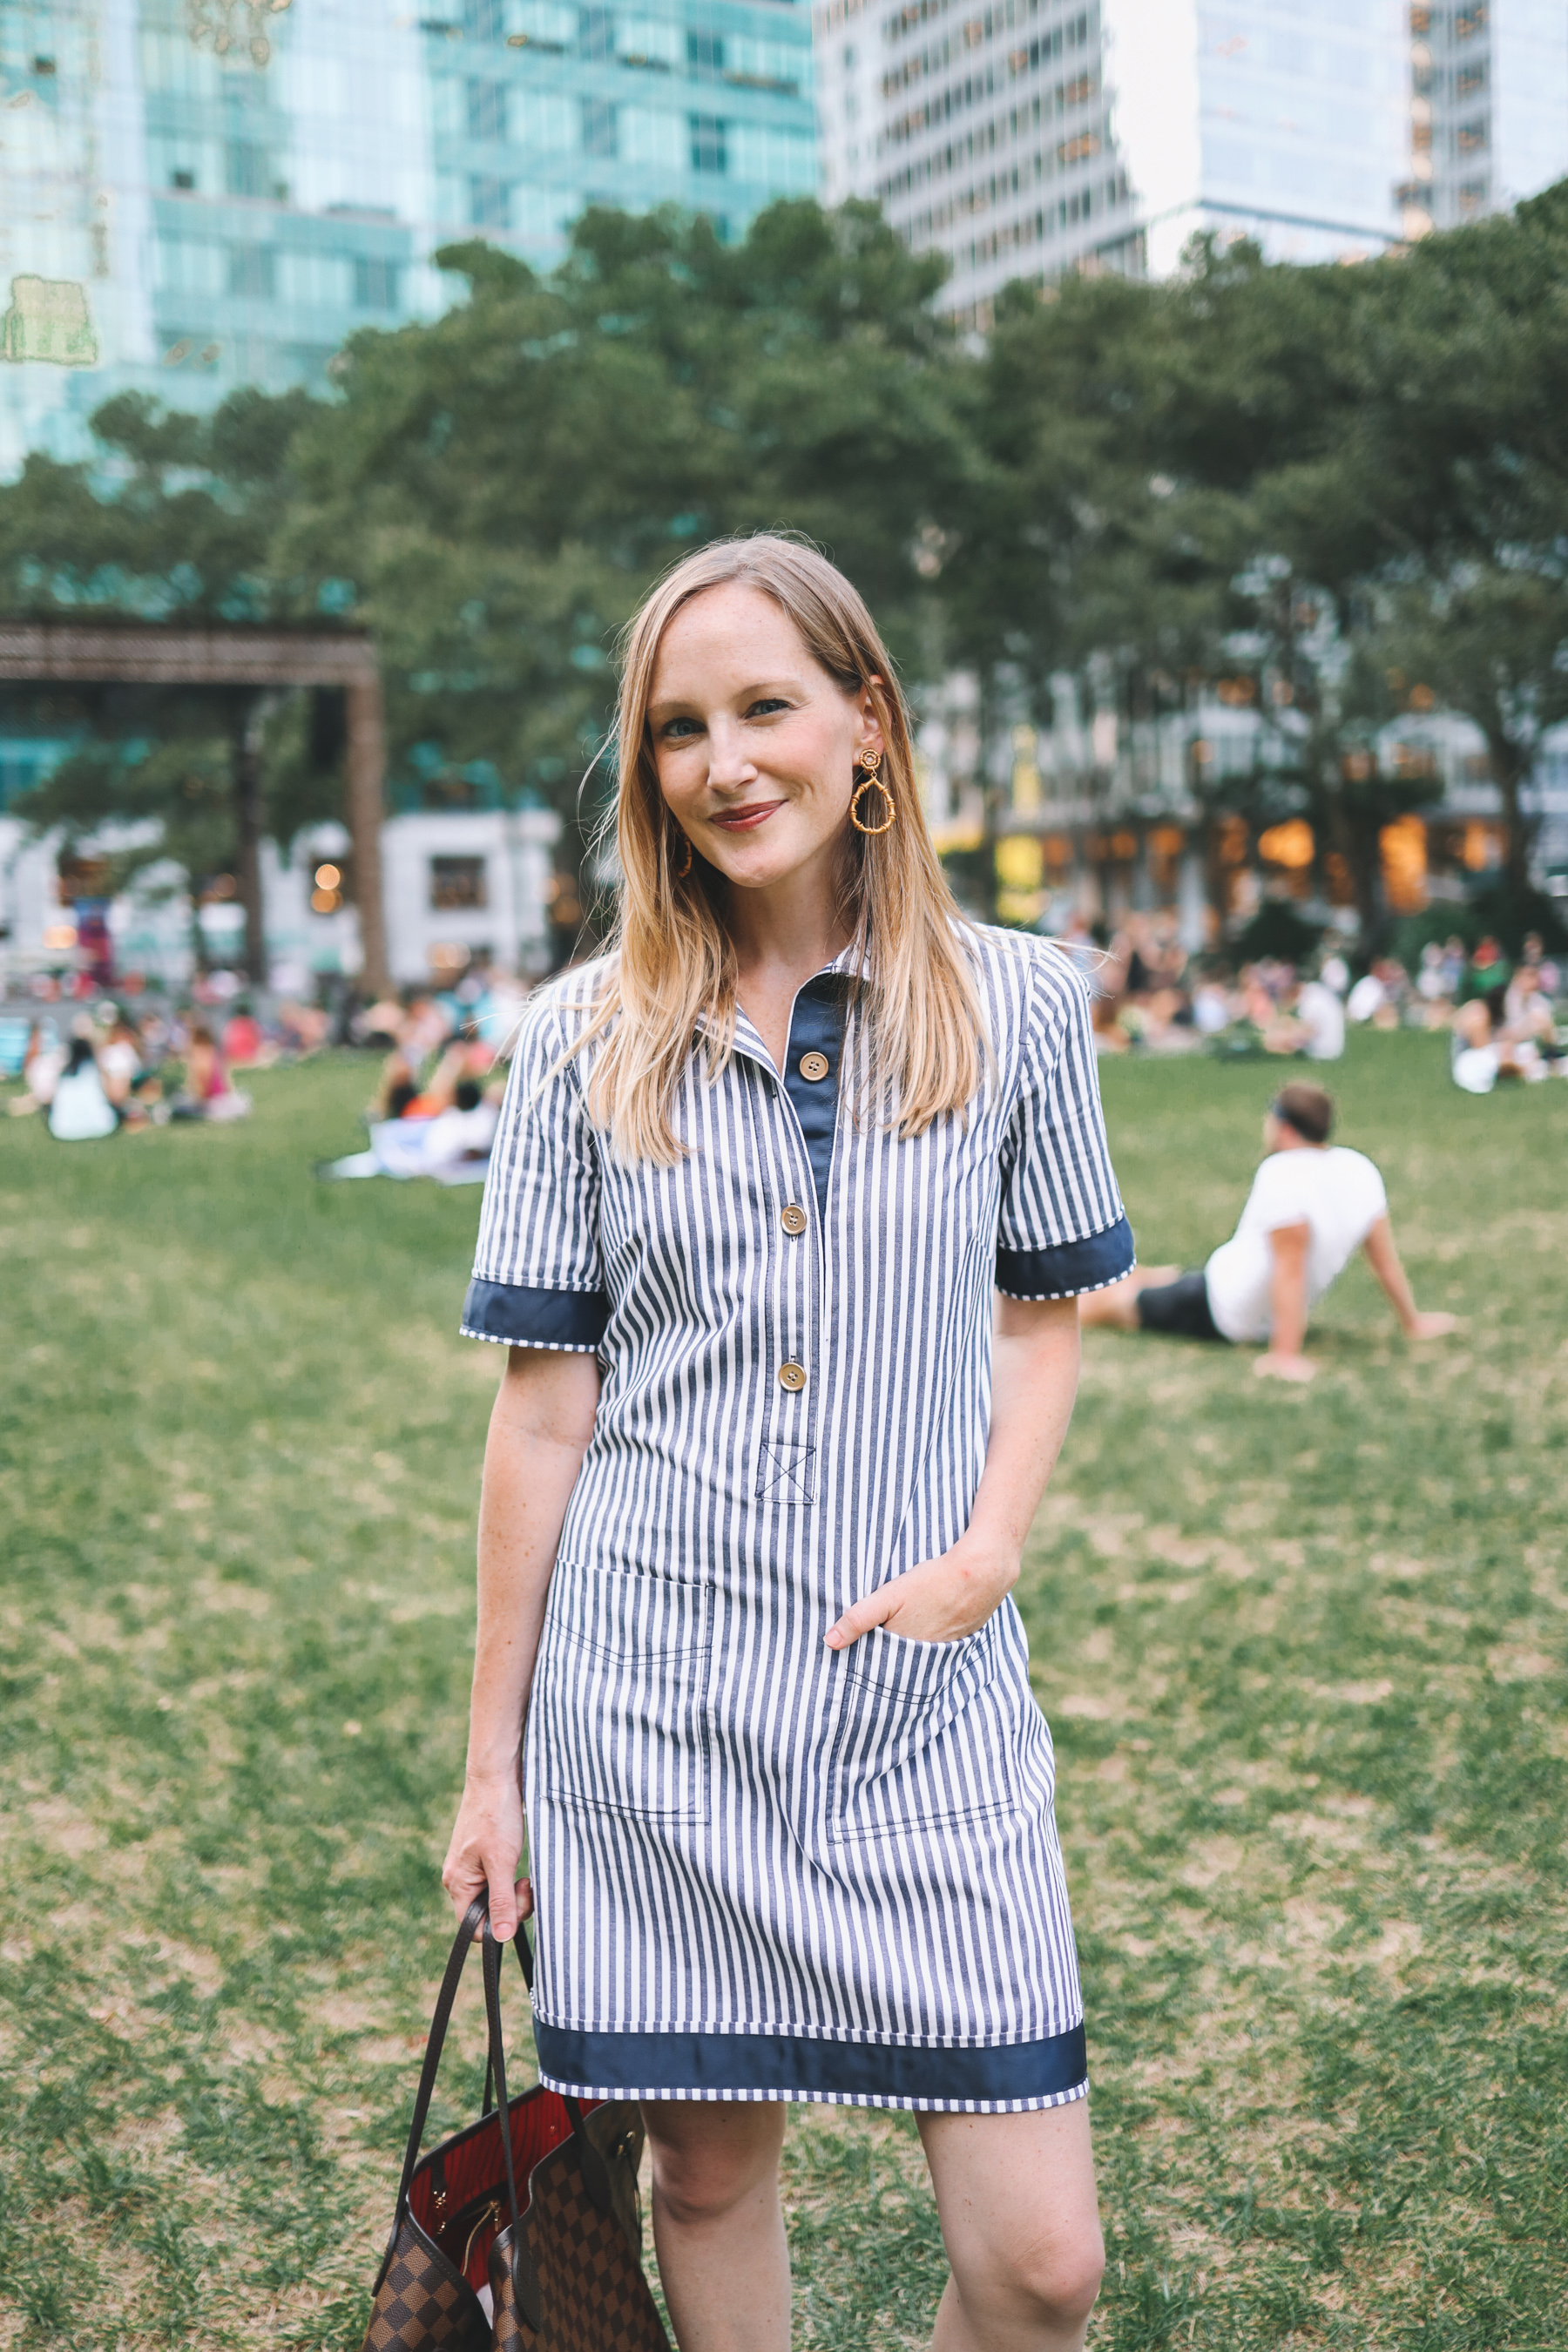 Kelly smiling in her easy shirtdress while spending time in the city